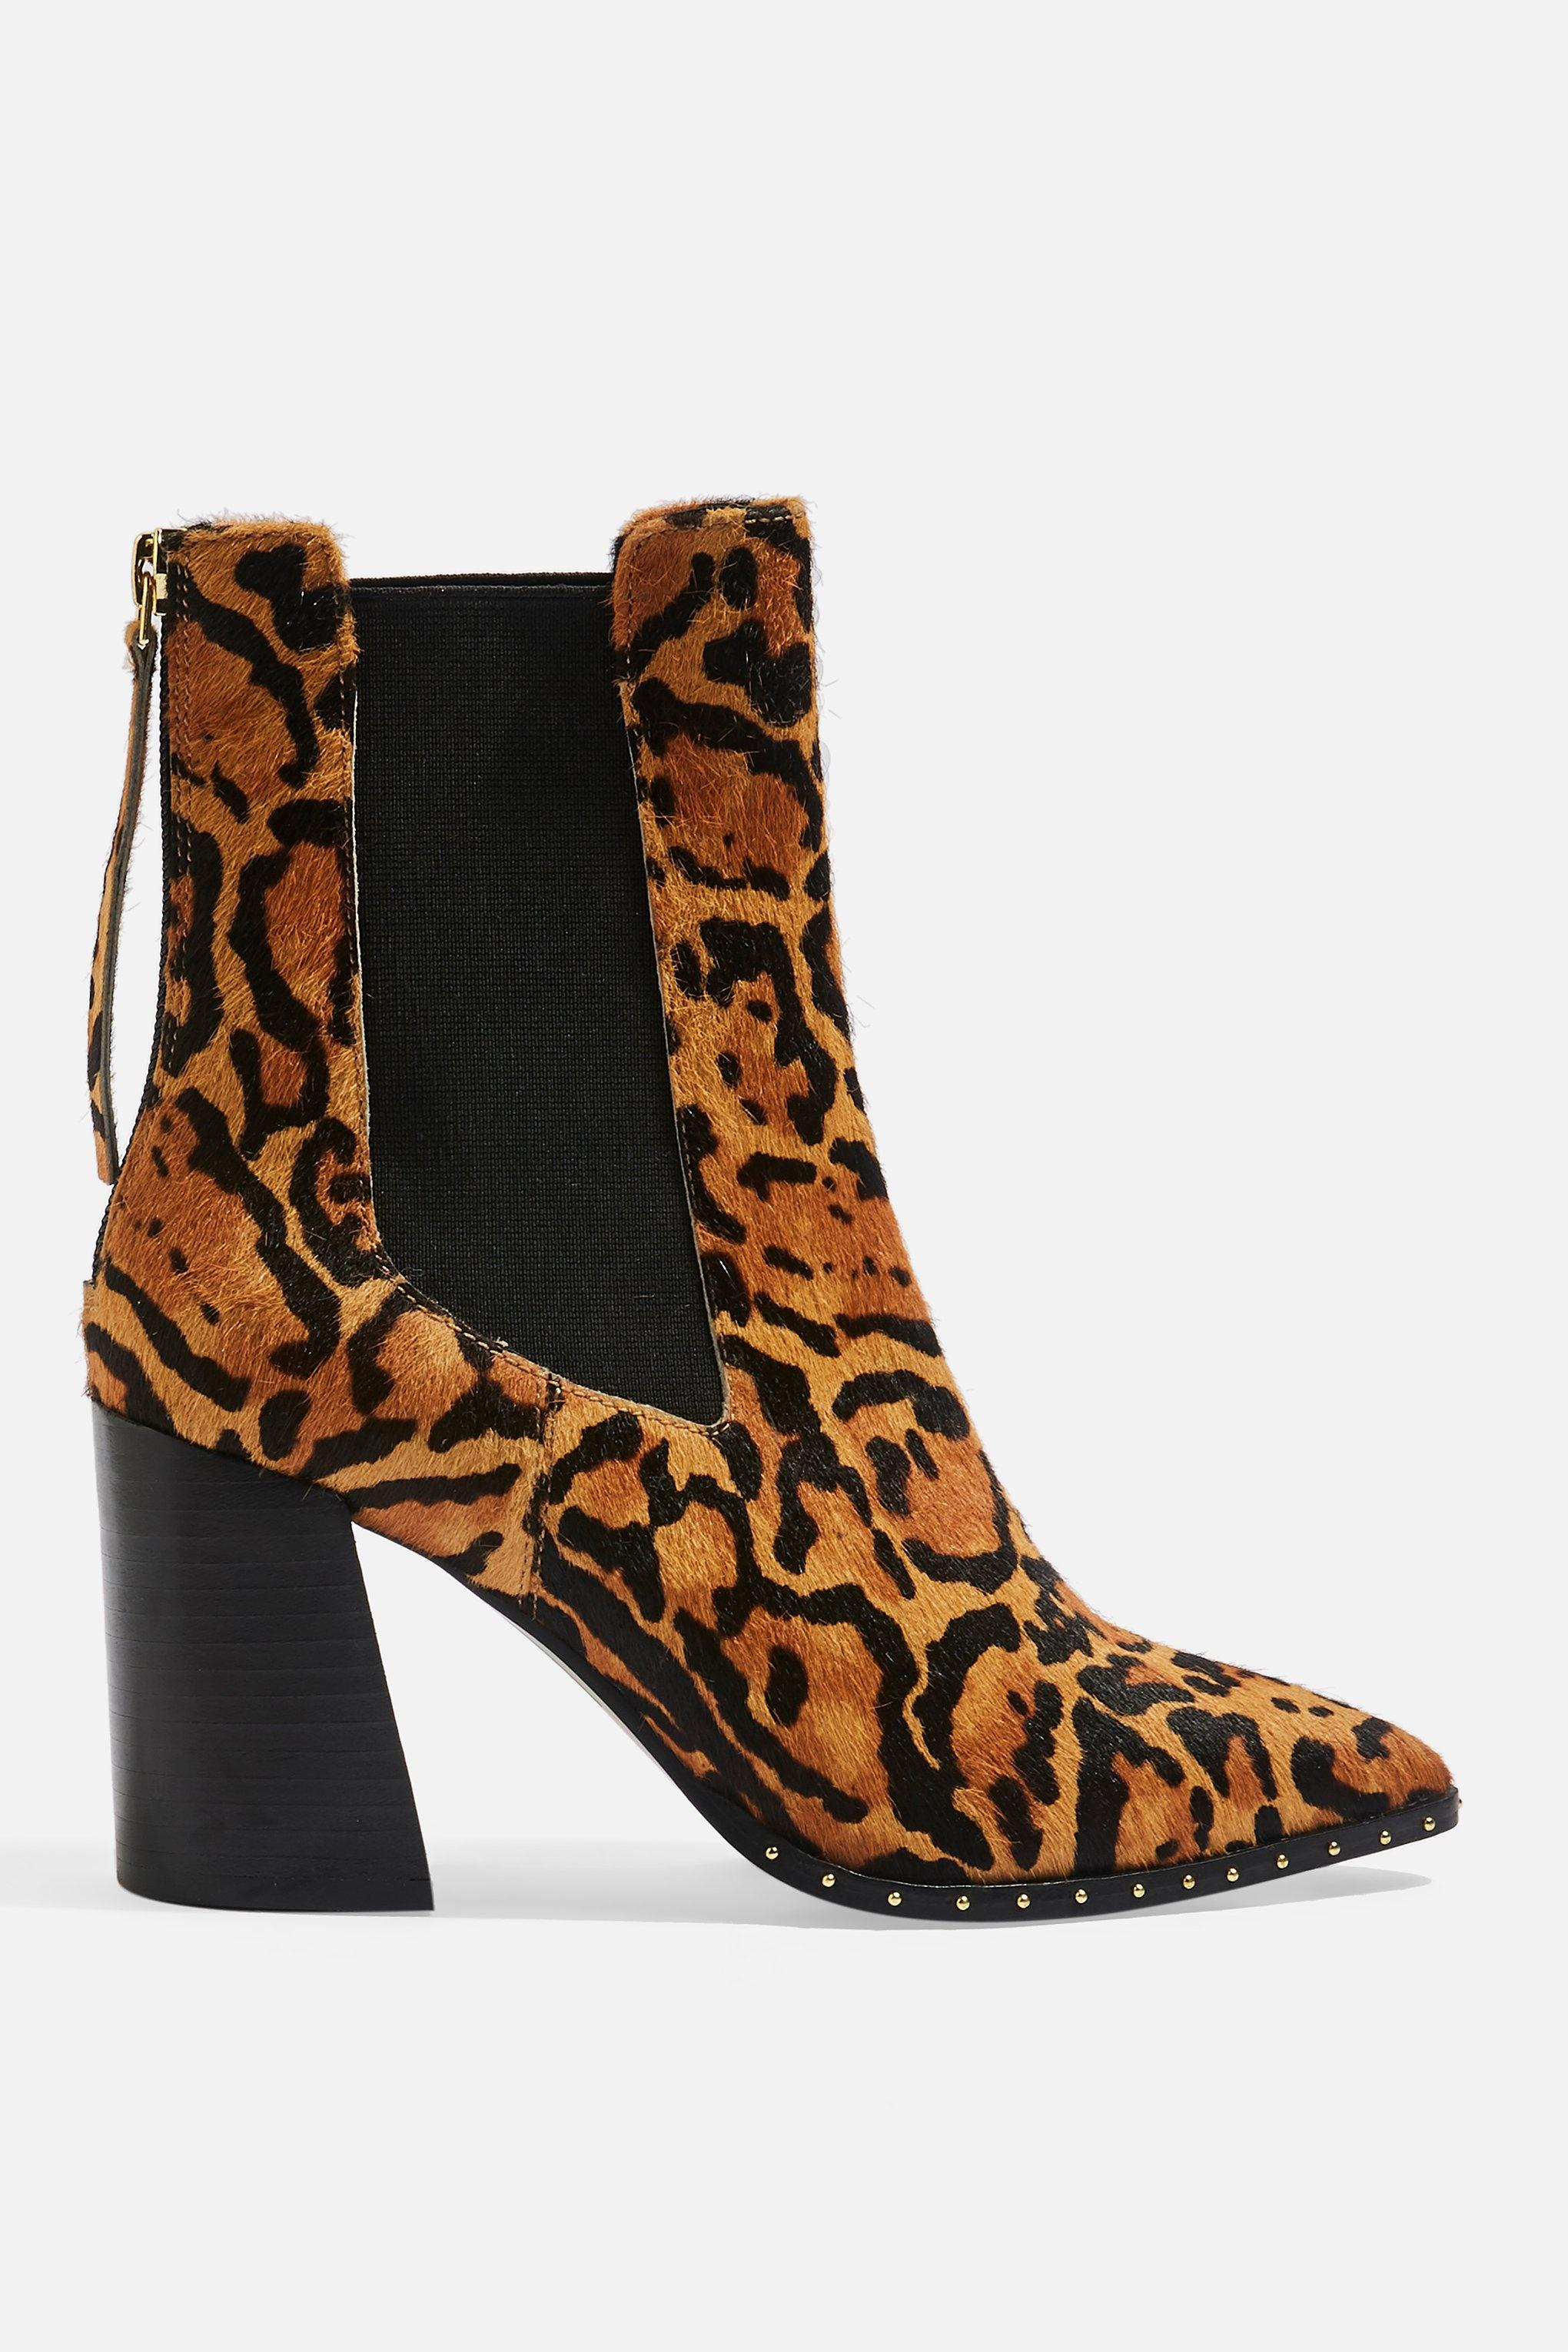 f7006a17359c TOPSHOP Harrison Leopard High Heel Ankle Boots in Brown - Lyst